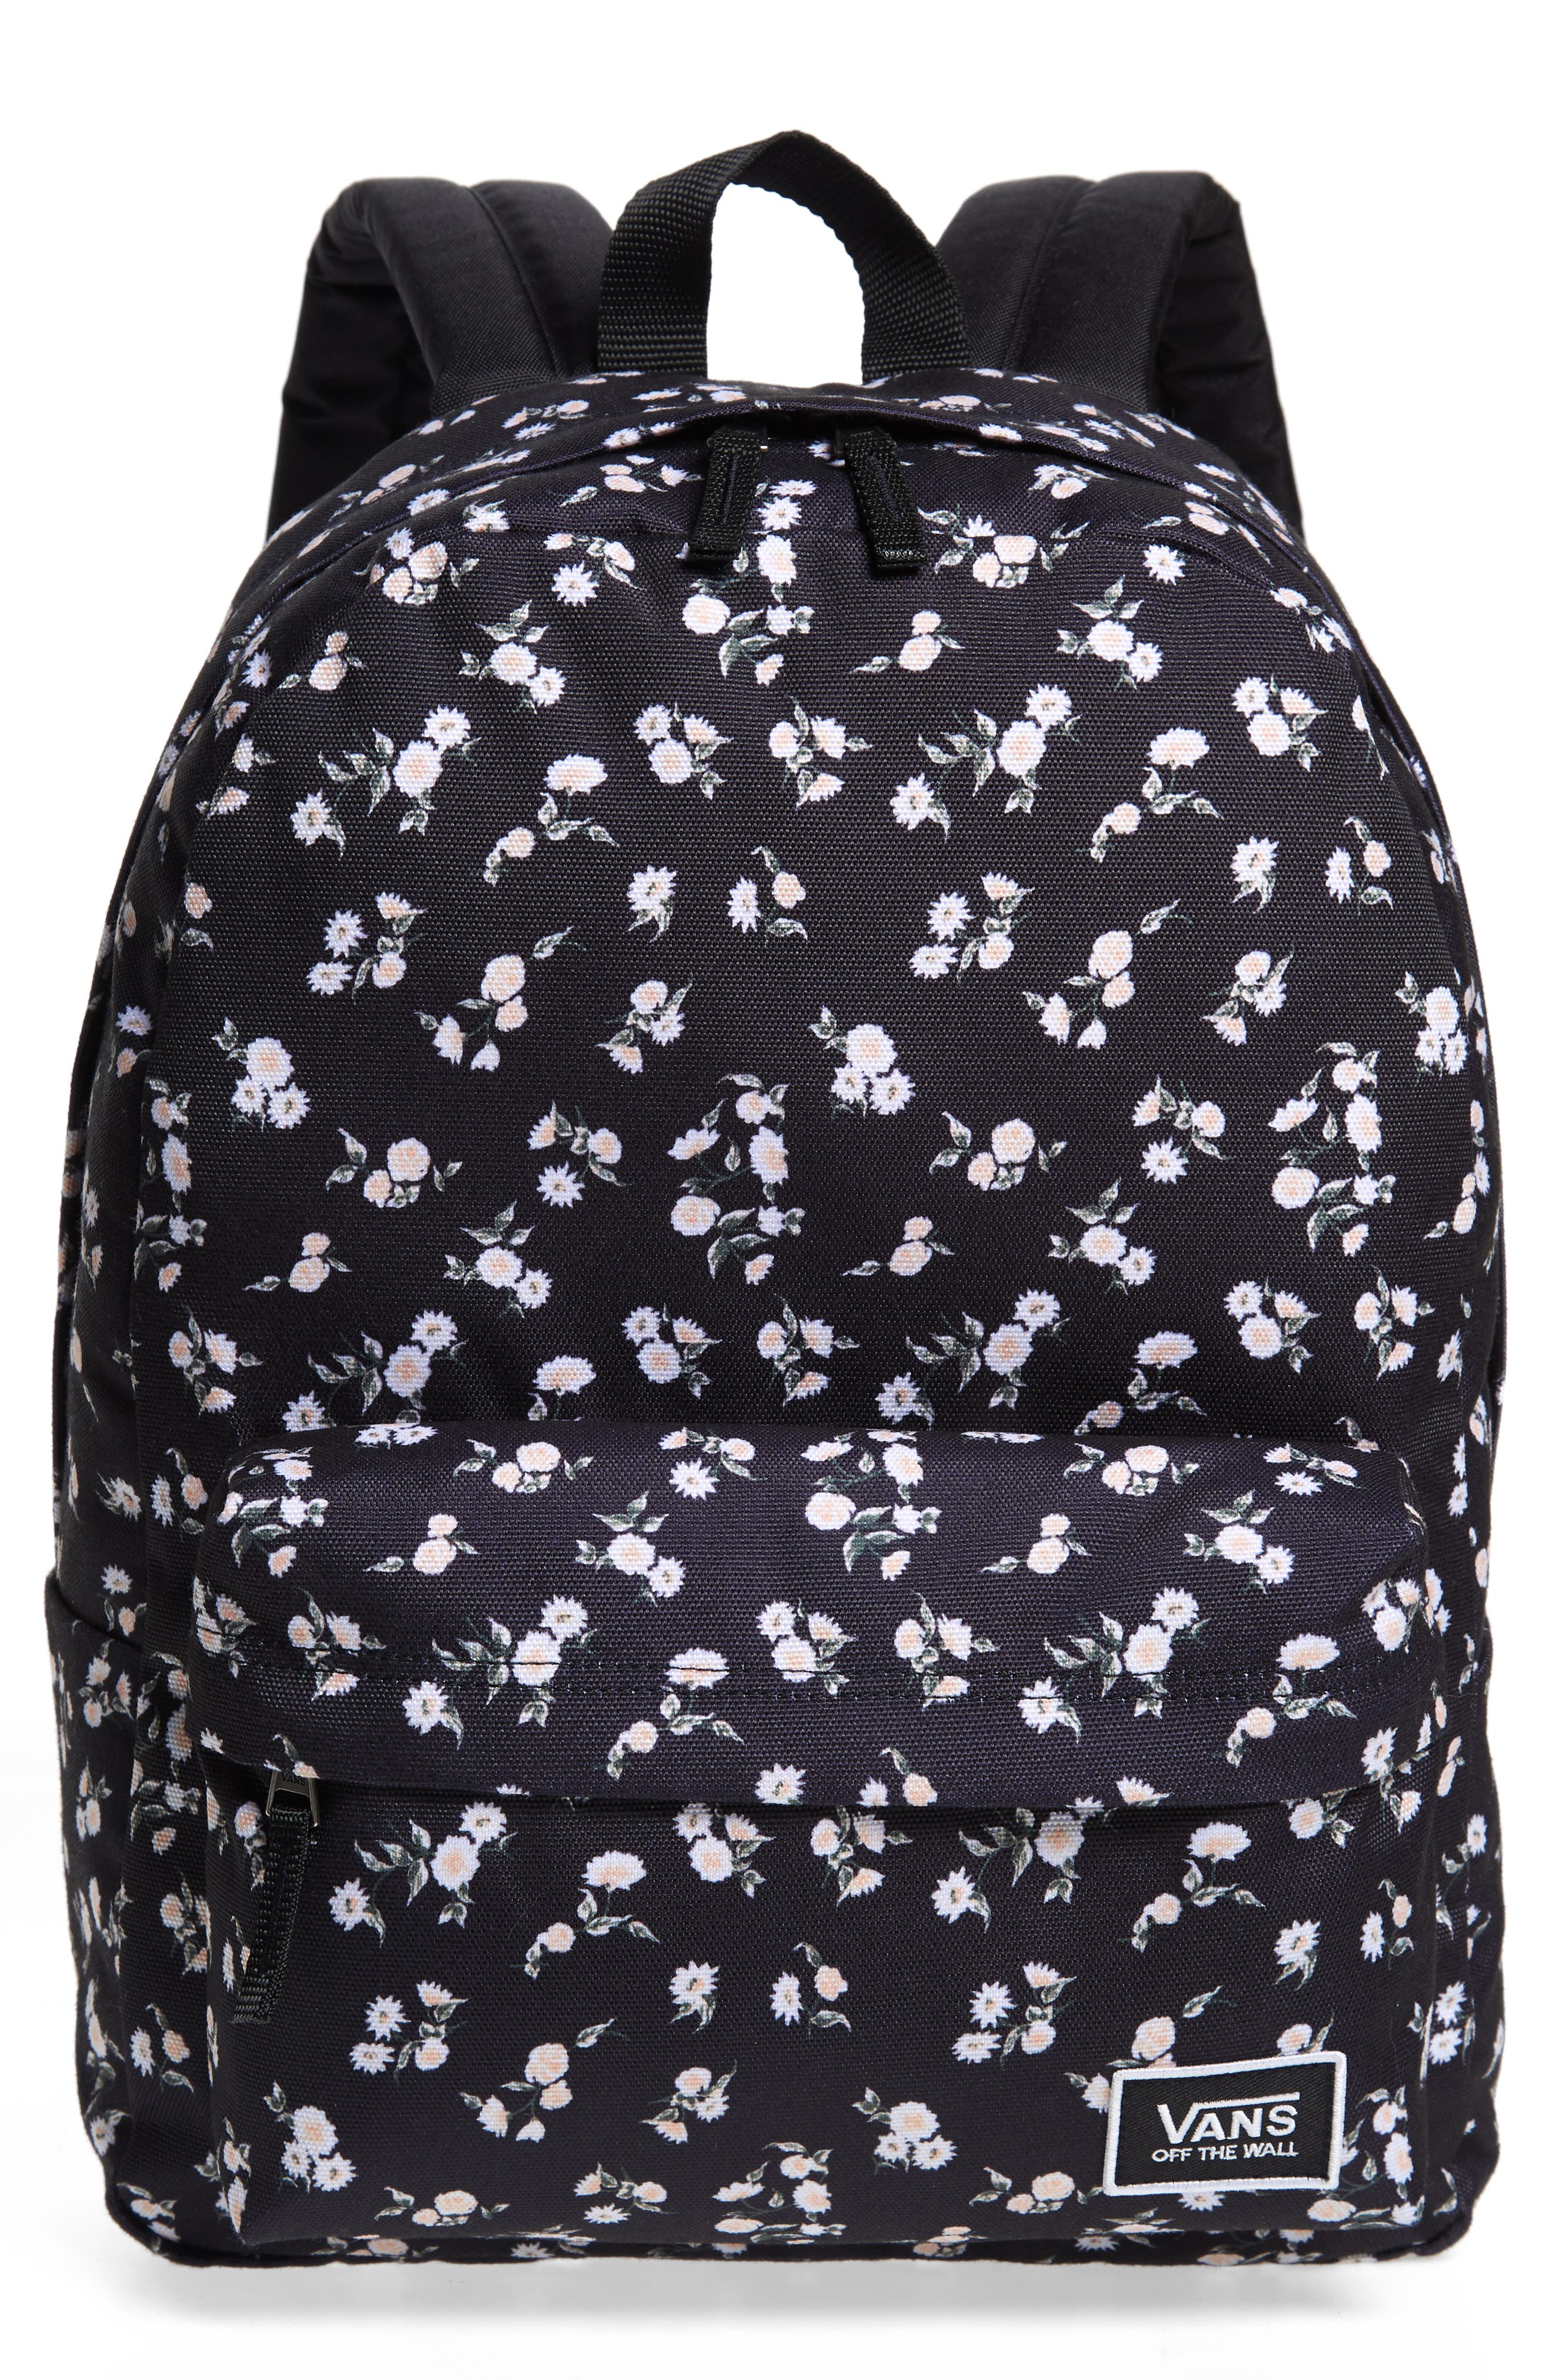 REALM CLASSIC BACKPACK - BLACK